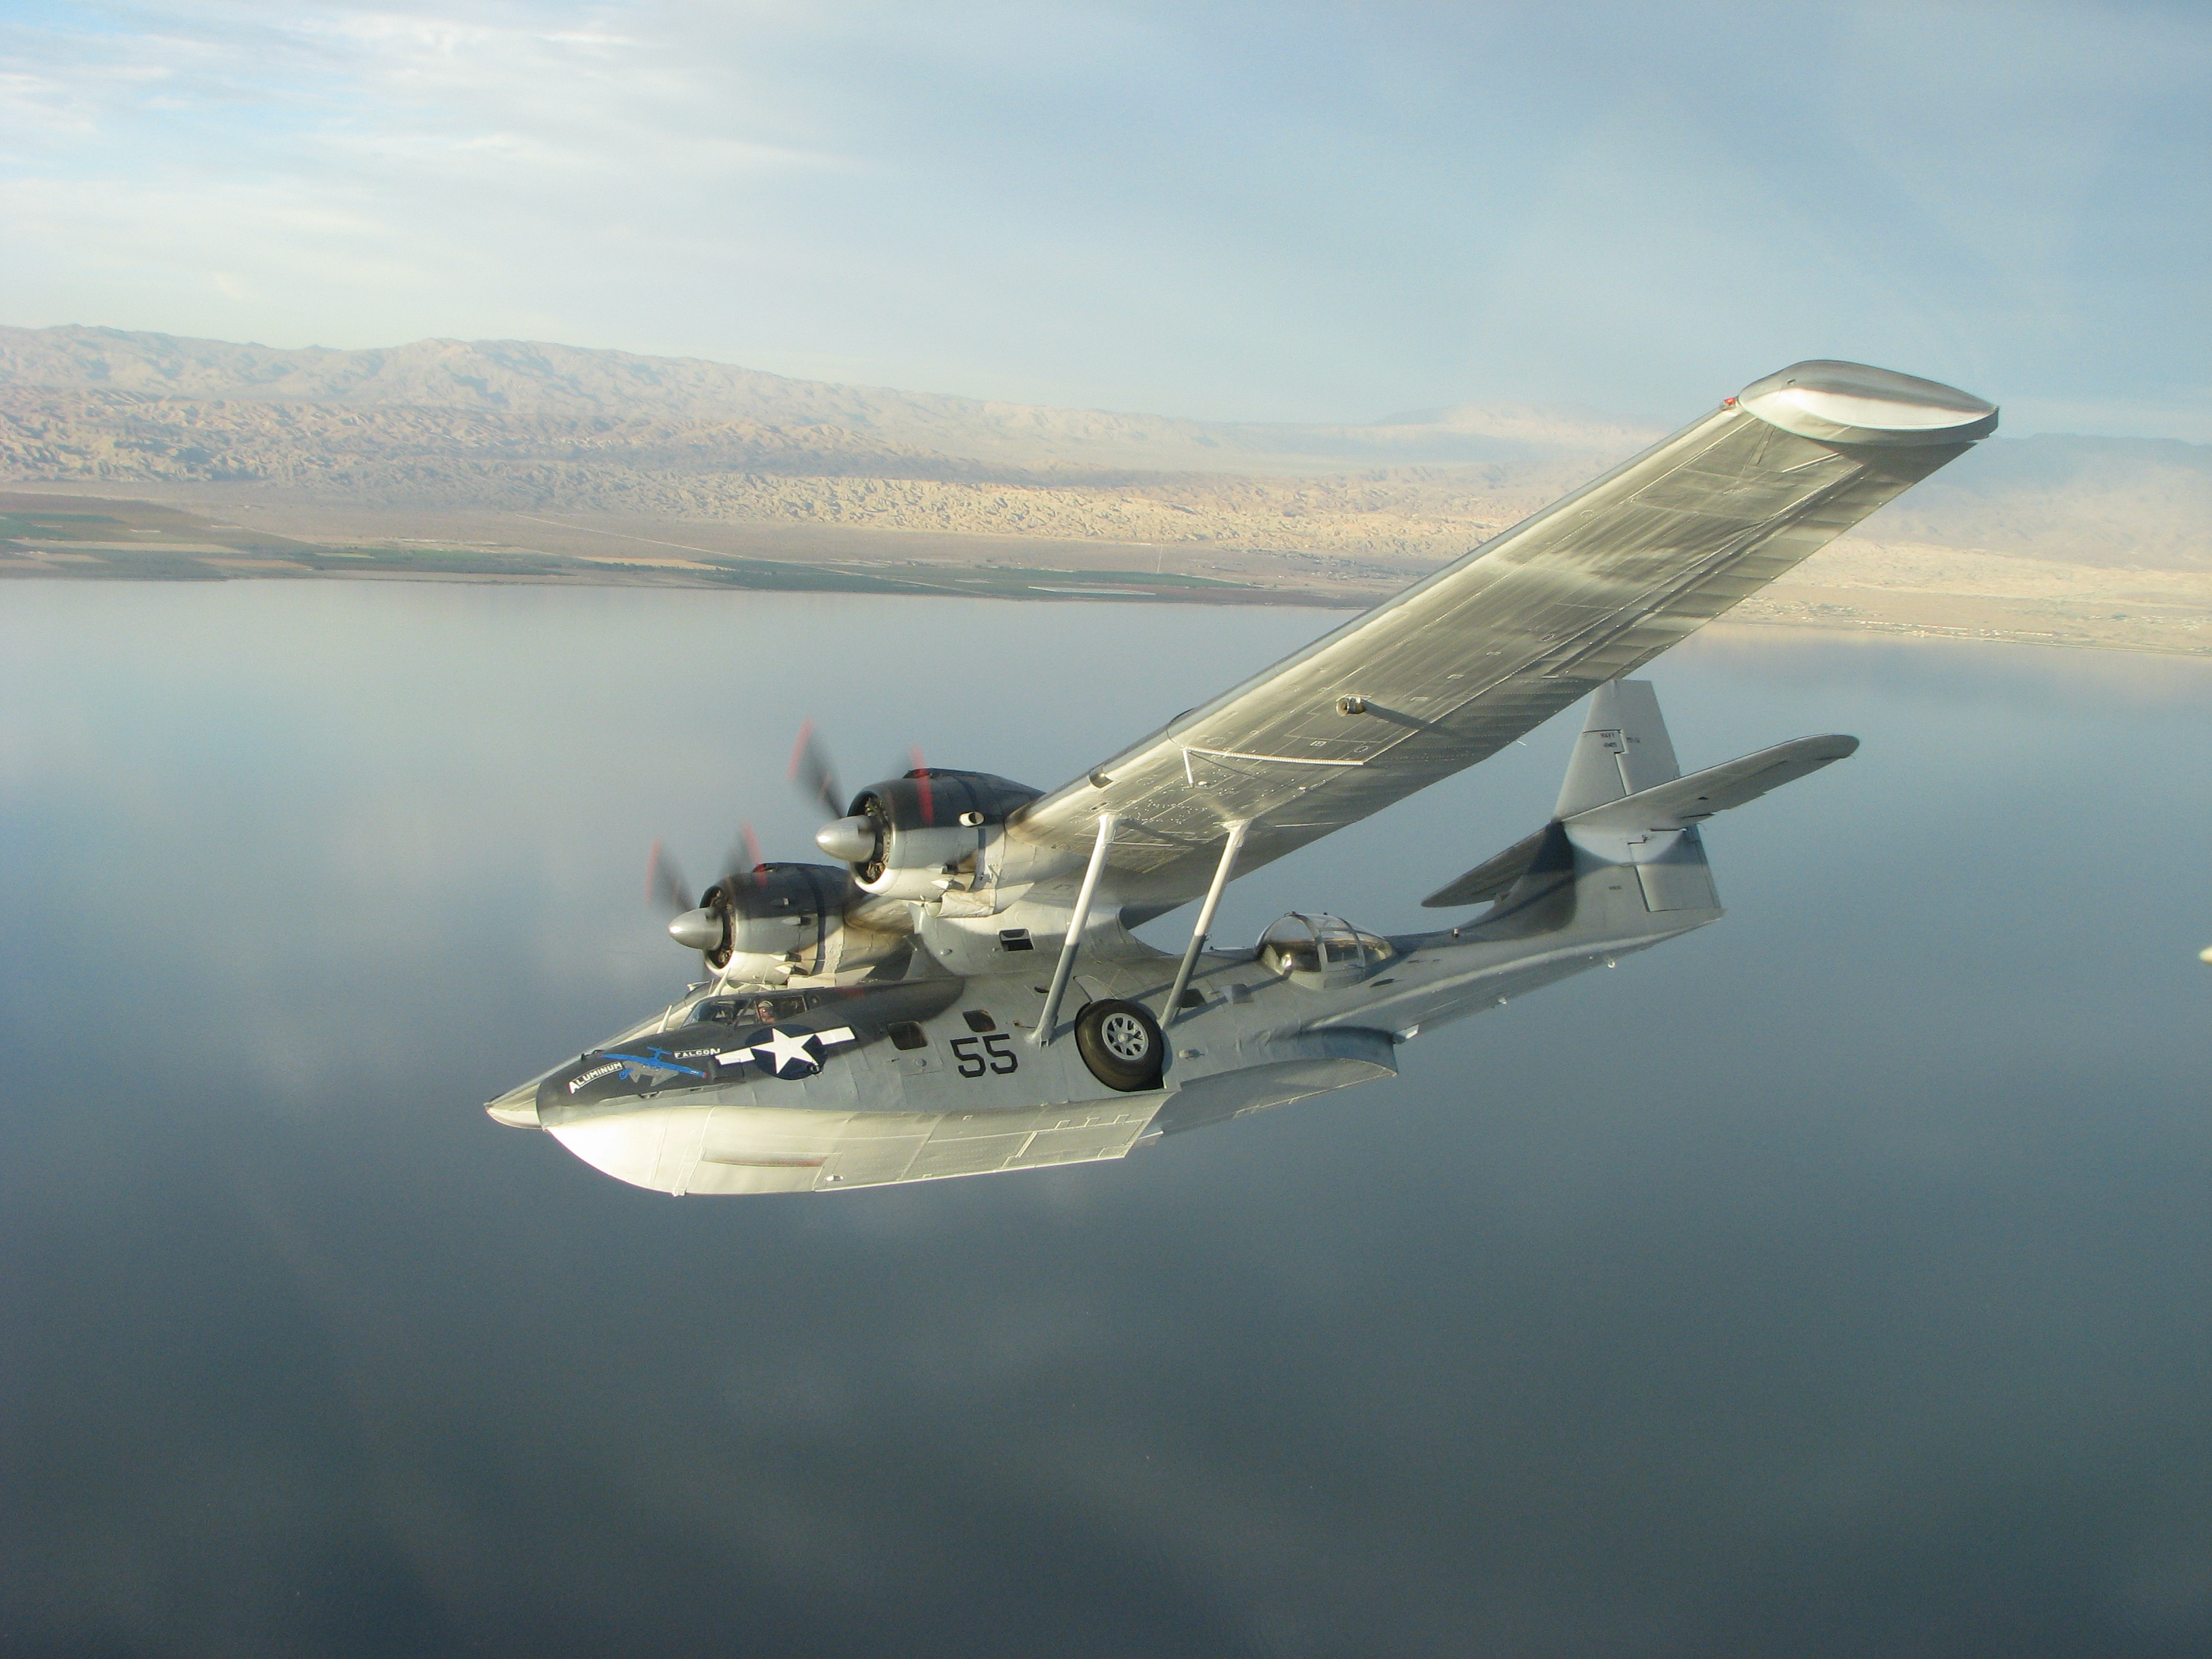 Consolidated pby catalina flying over the salton sea for The catalina